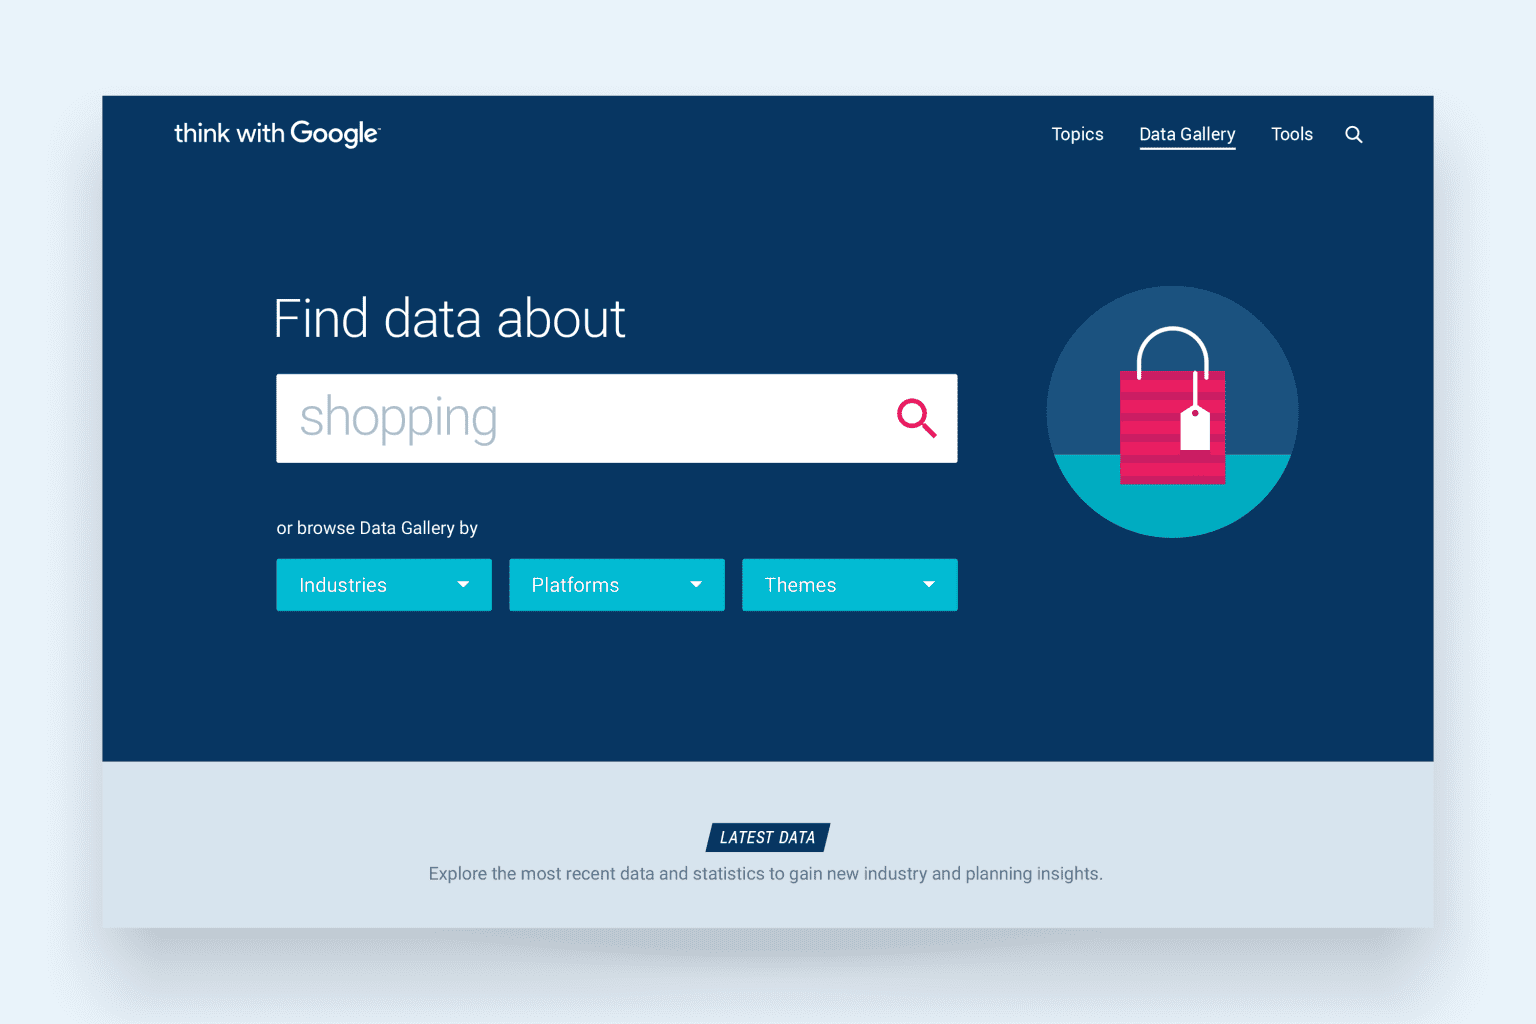 Think with Google — Data Gallery